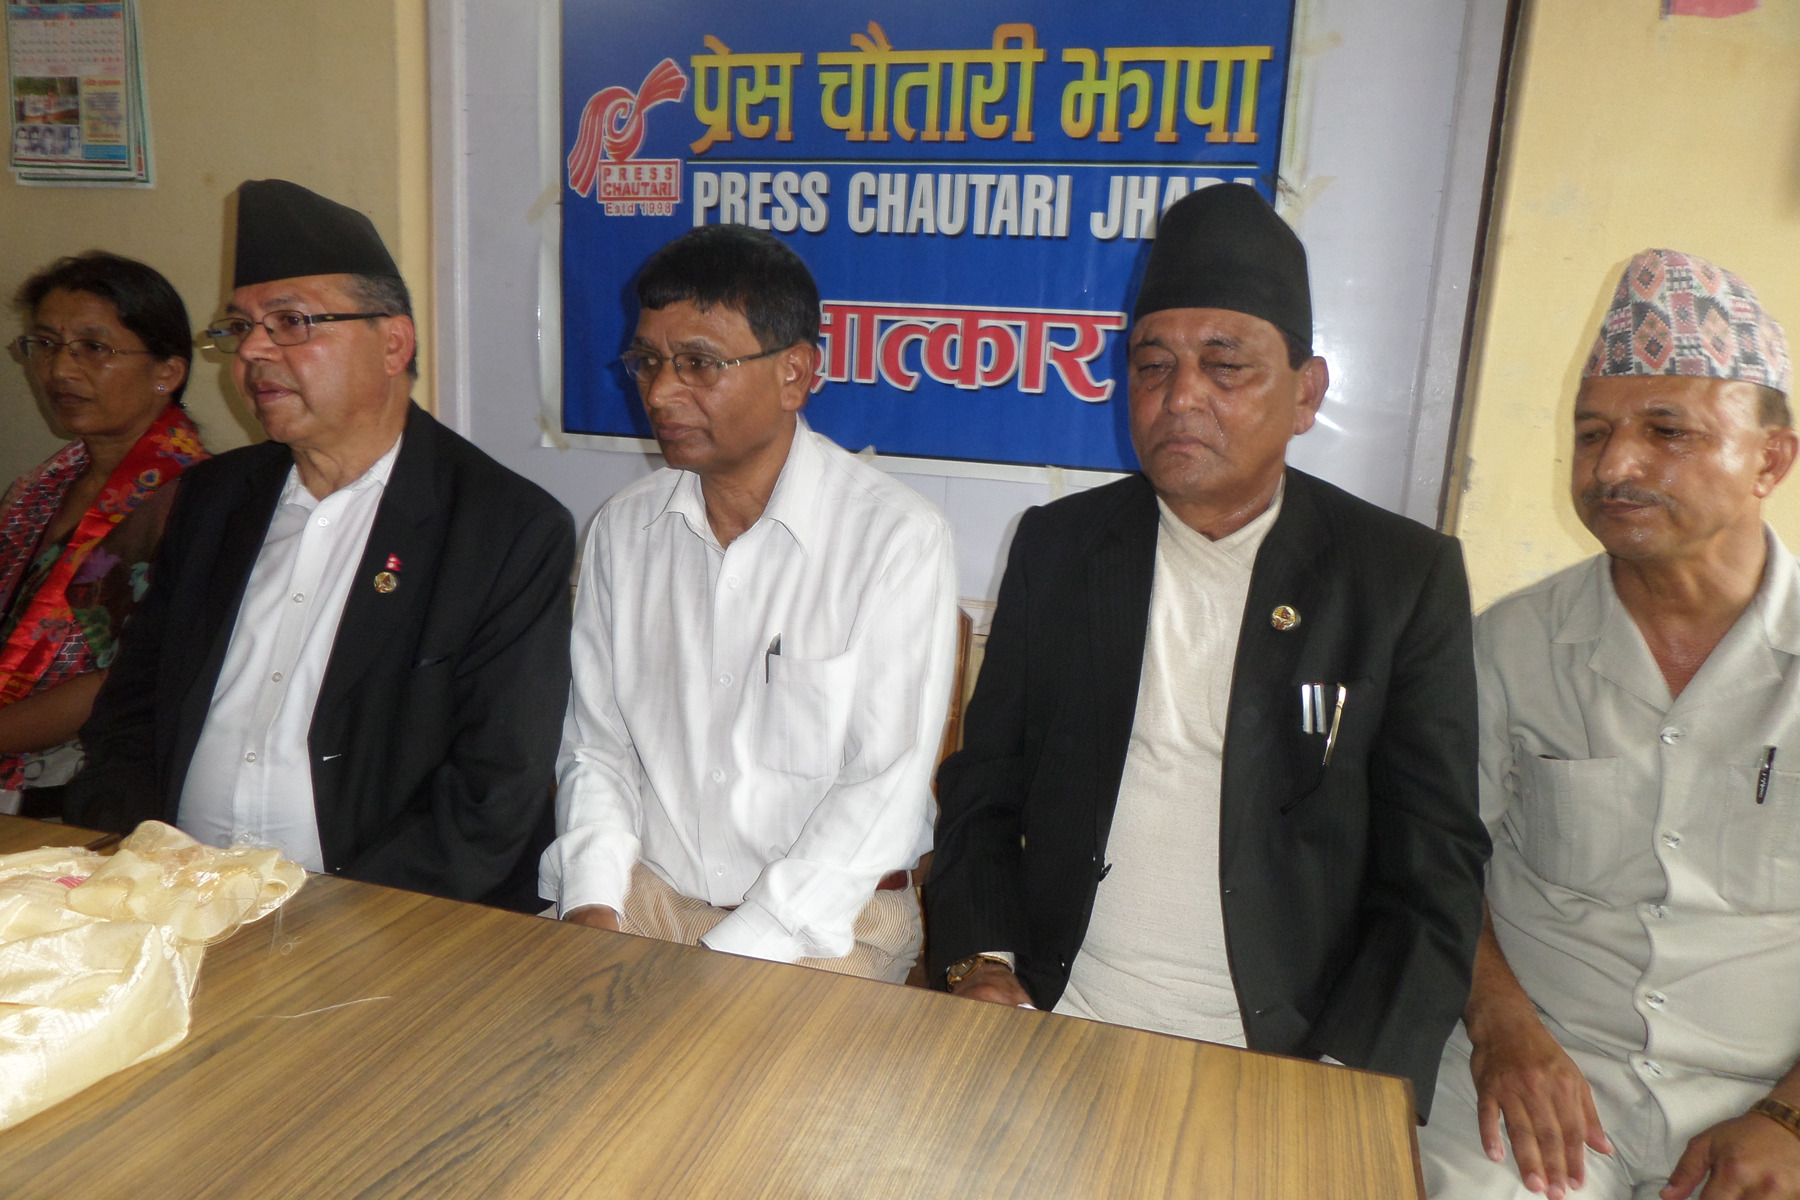 Former Prime Minister and CPN-UML senior leader Jhalanath Khanal speaking at a press conference organised by the Press Chautari Jhapa Chapter on Sunday, July 19, 2015. RSS